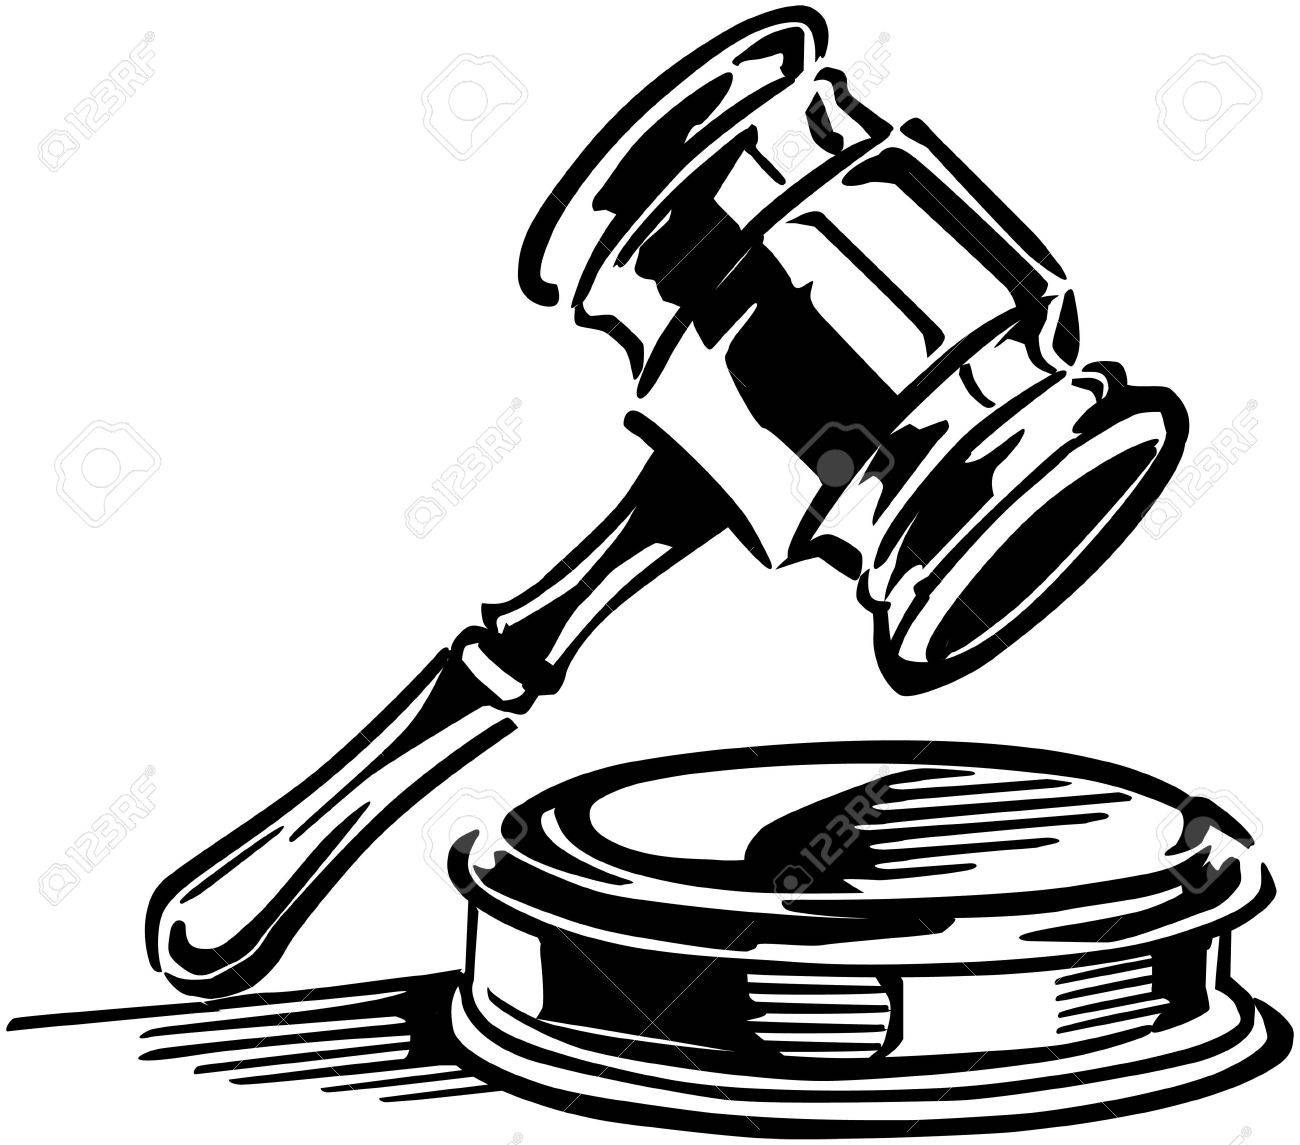 gavel royalty free cliparts vectors and stock illustration image rh 123rf com gavel clipart free gavel clip art vector